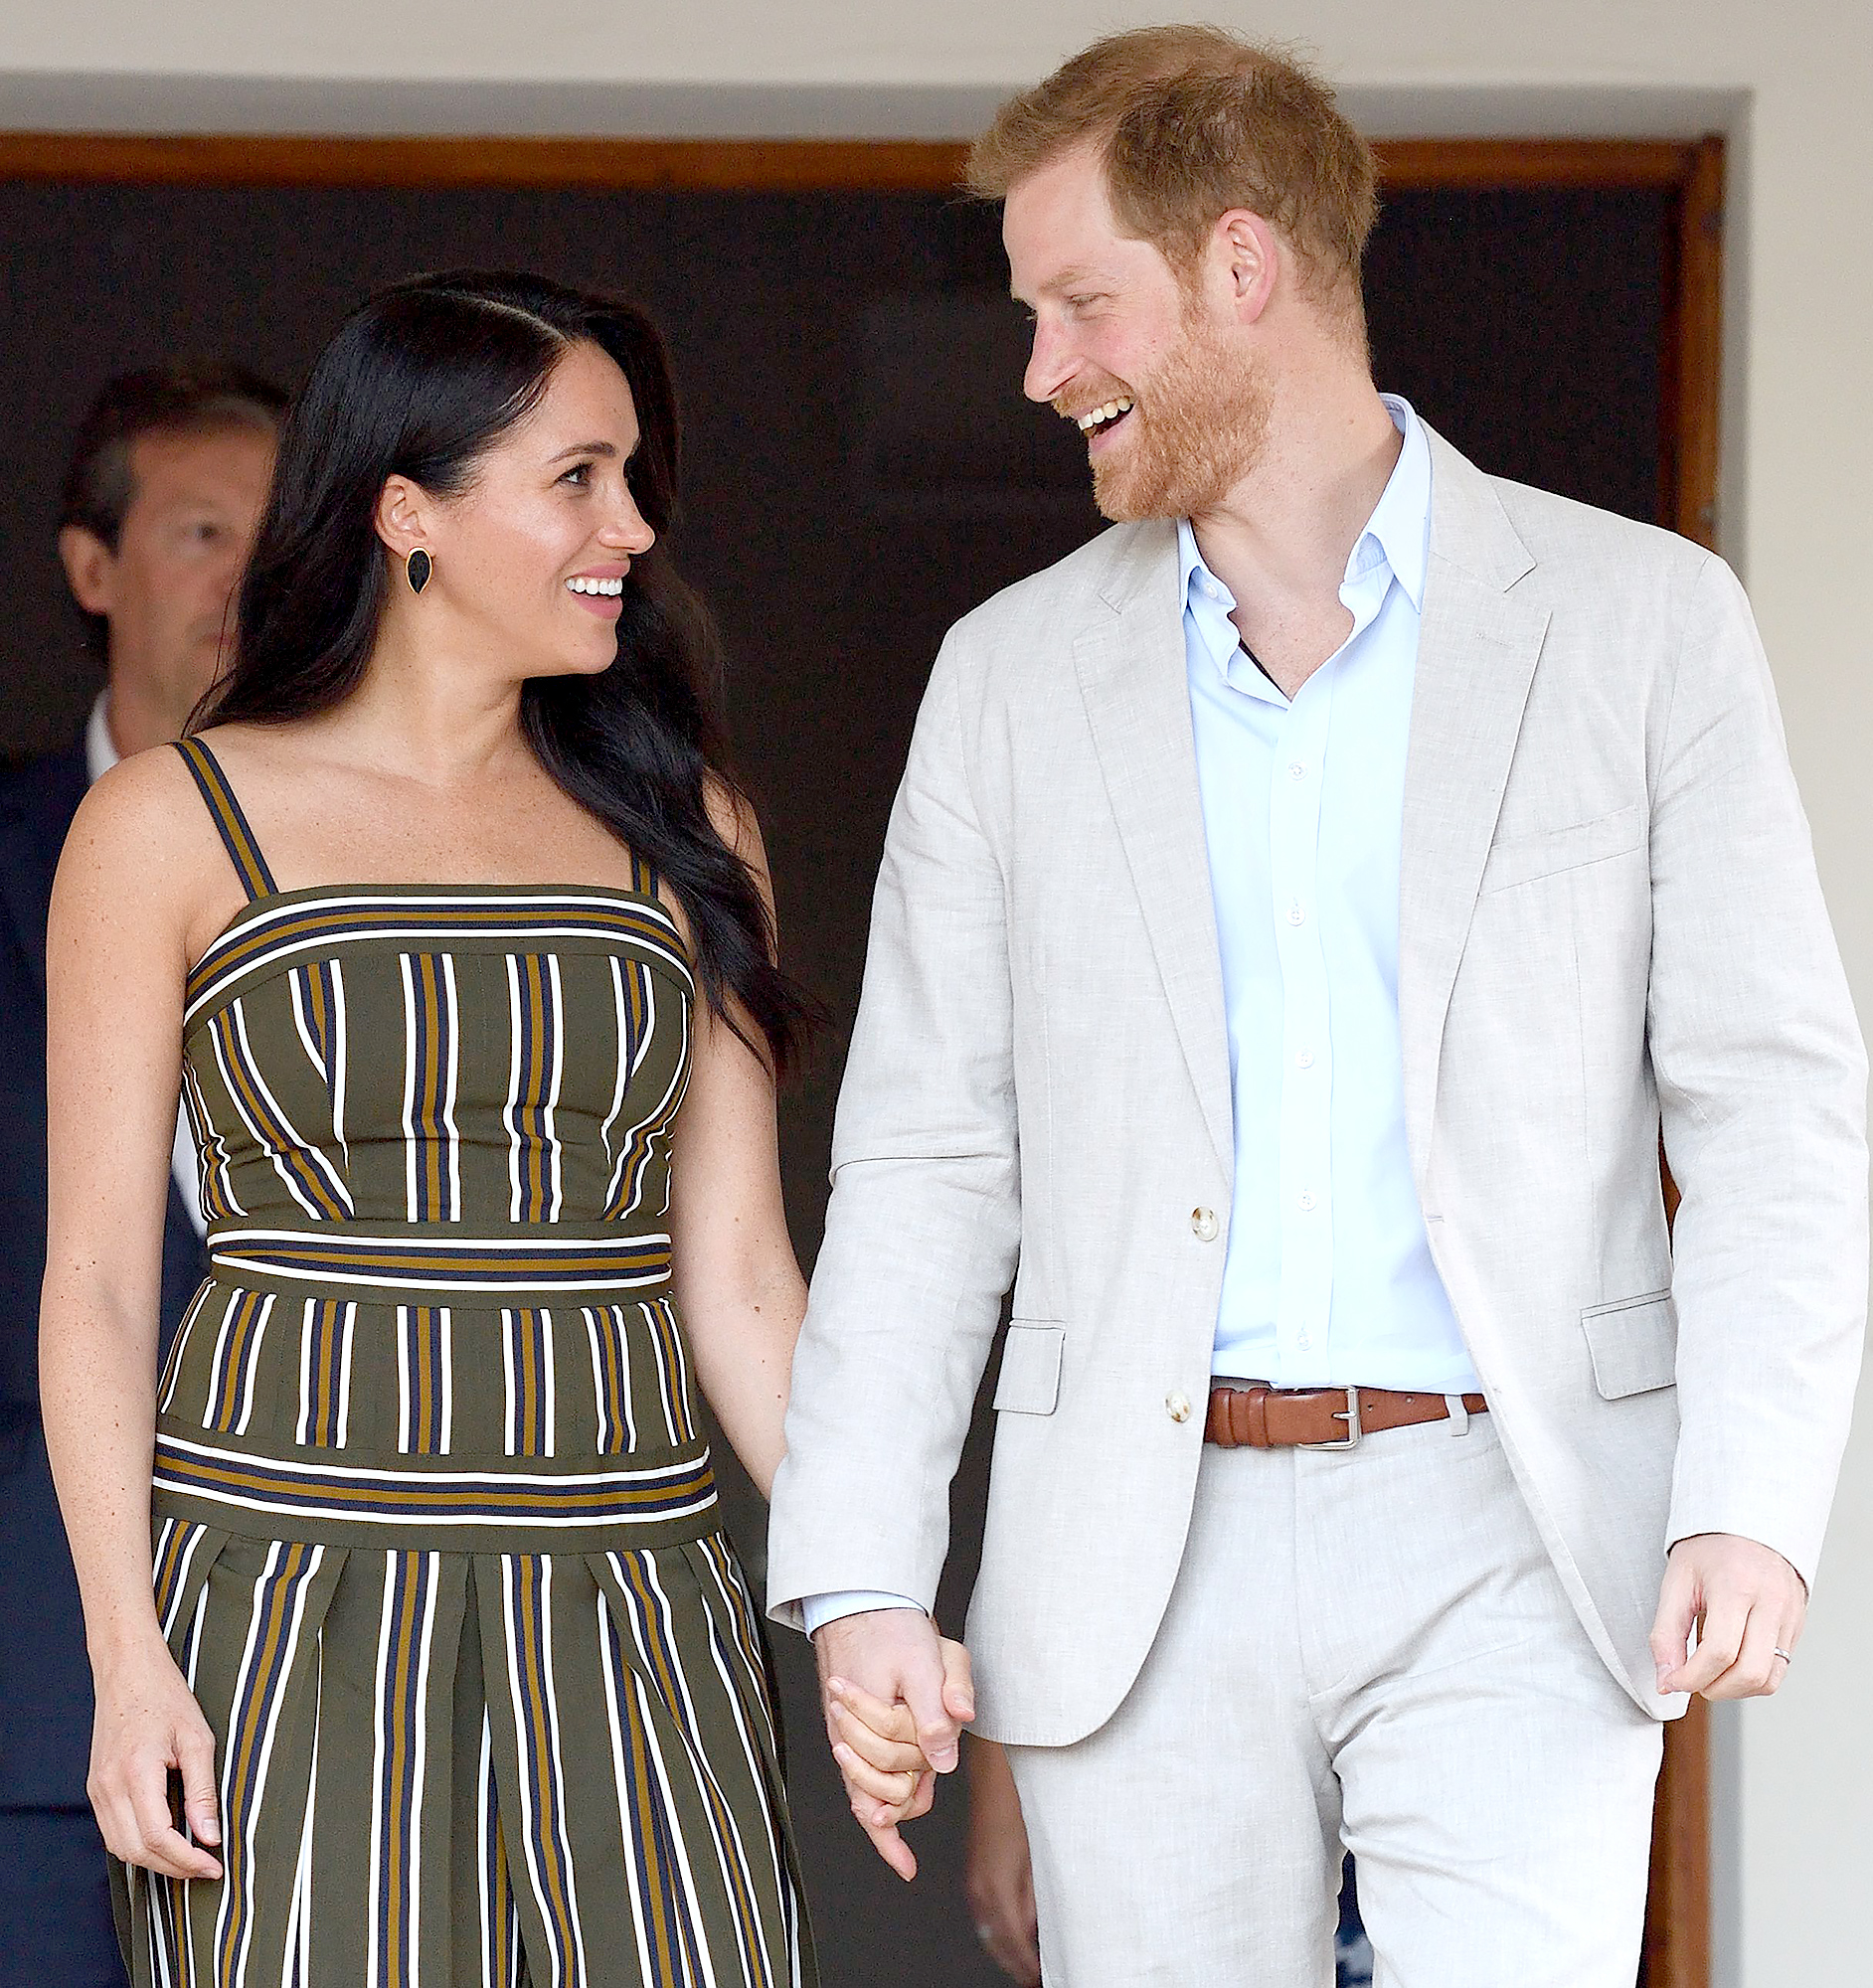 What Prince Harry, Meghan Markle Got Each Other on 2nd Anniversary